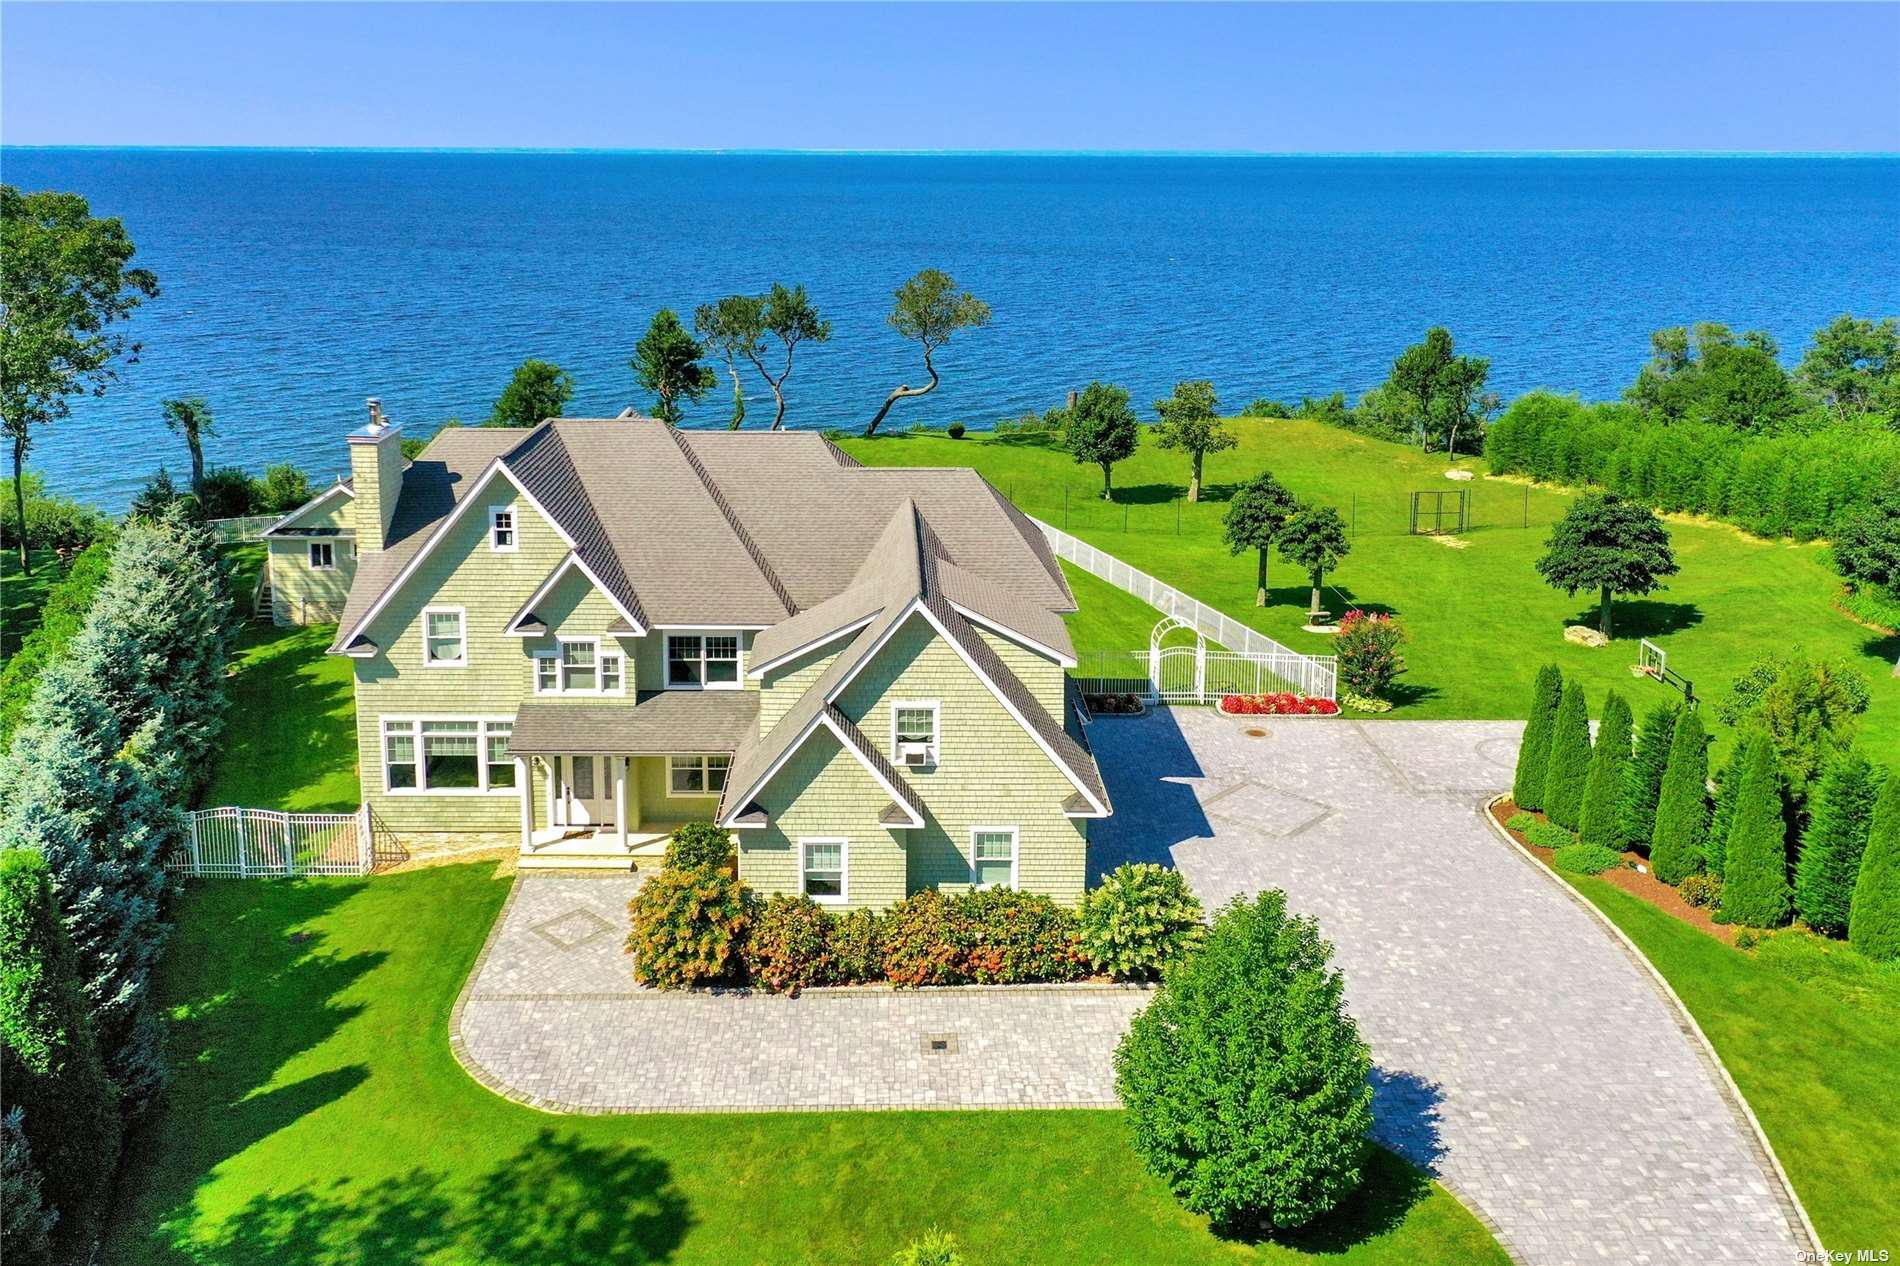 34 Waterview Court, Riverhead, NY 11901 - MLS#: 3341321